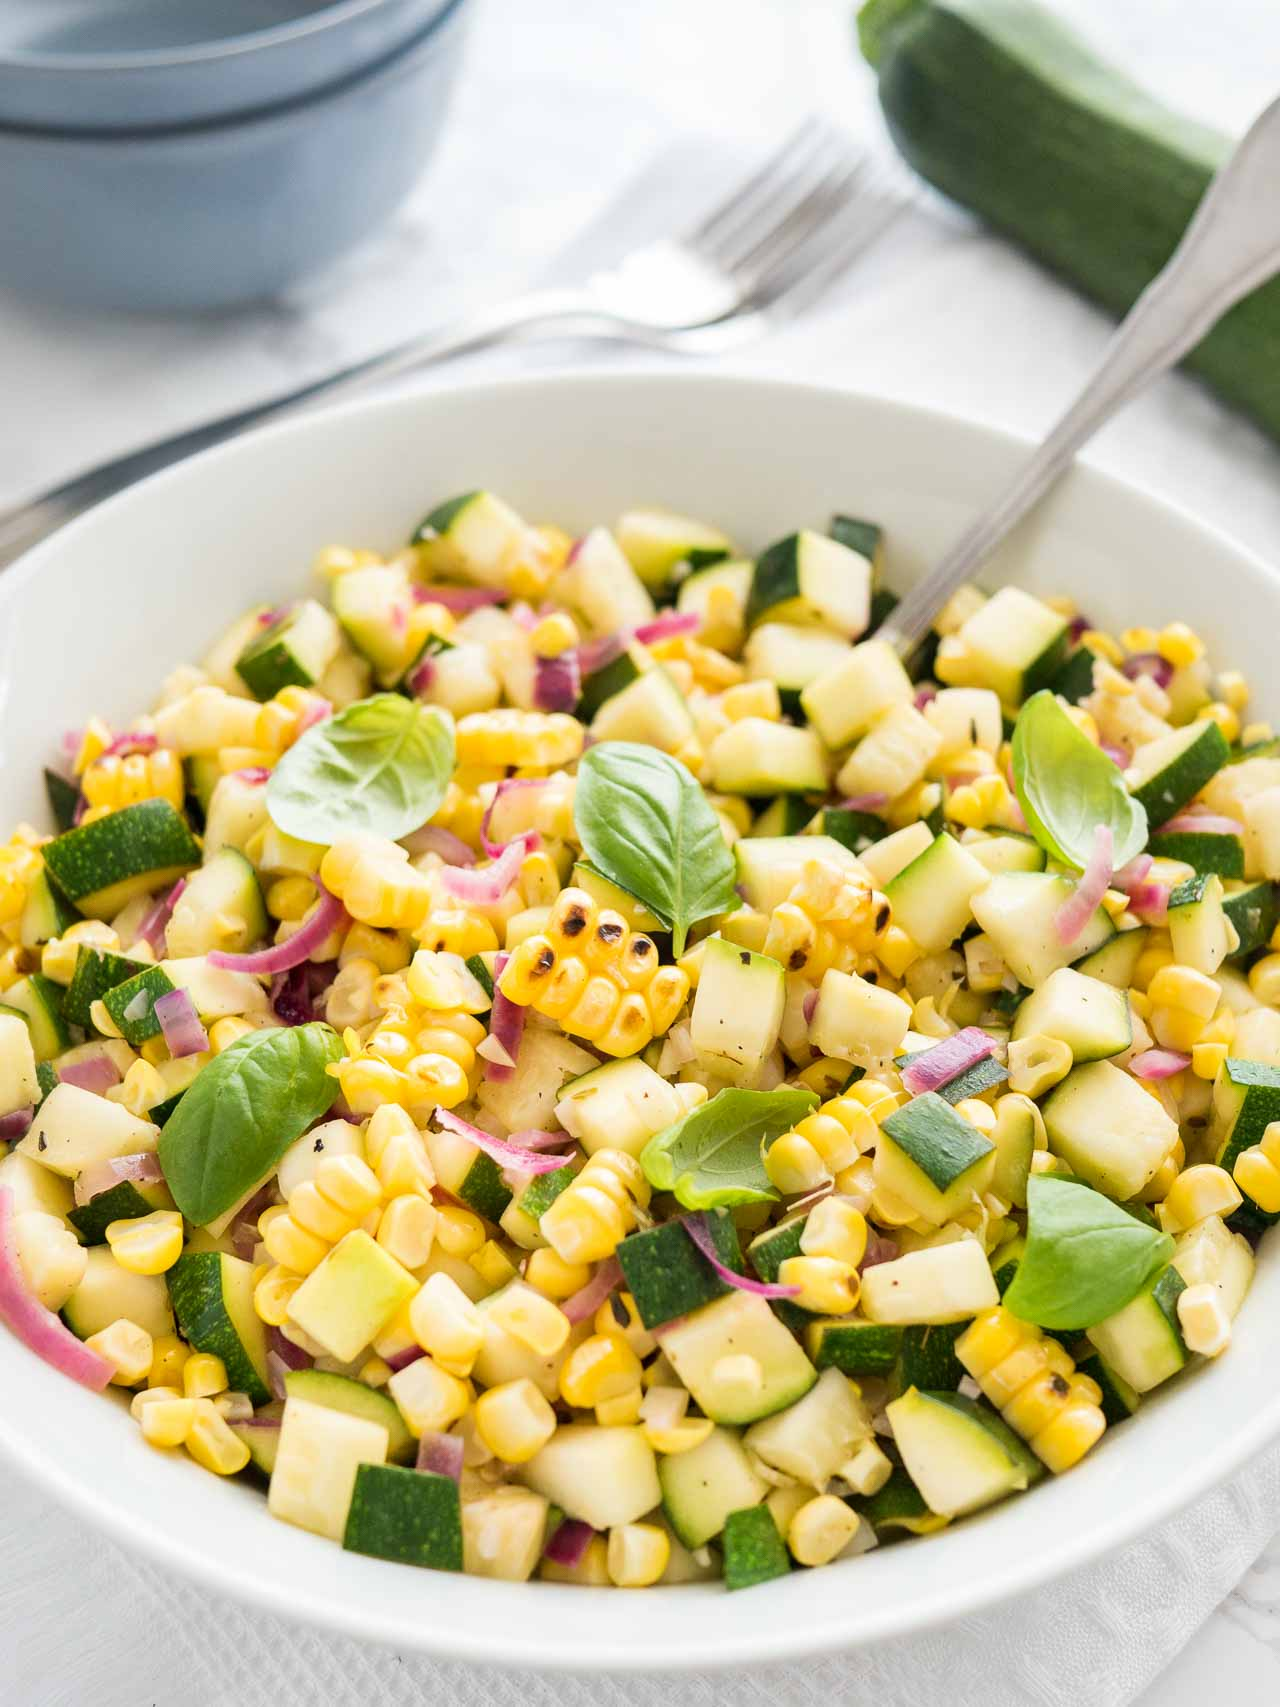 Interesting from the garden - Corn salad